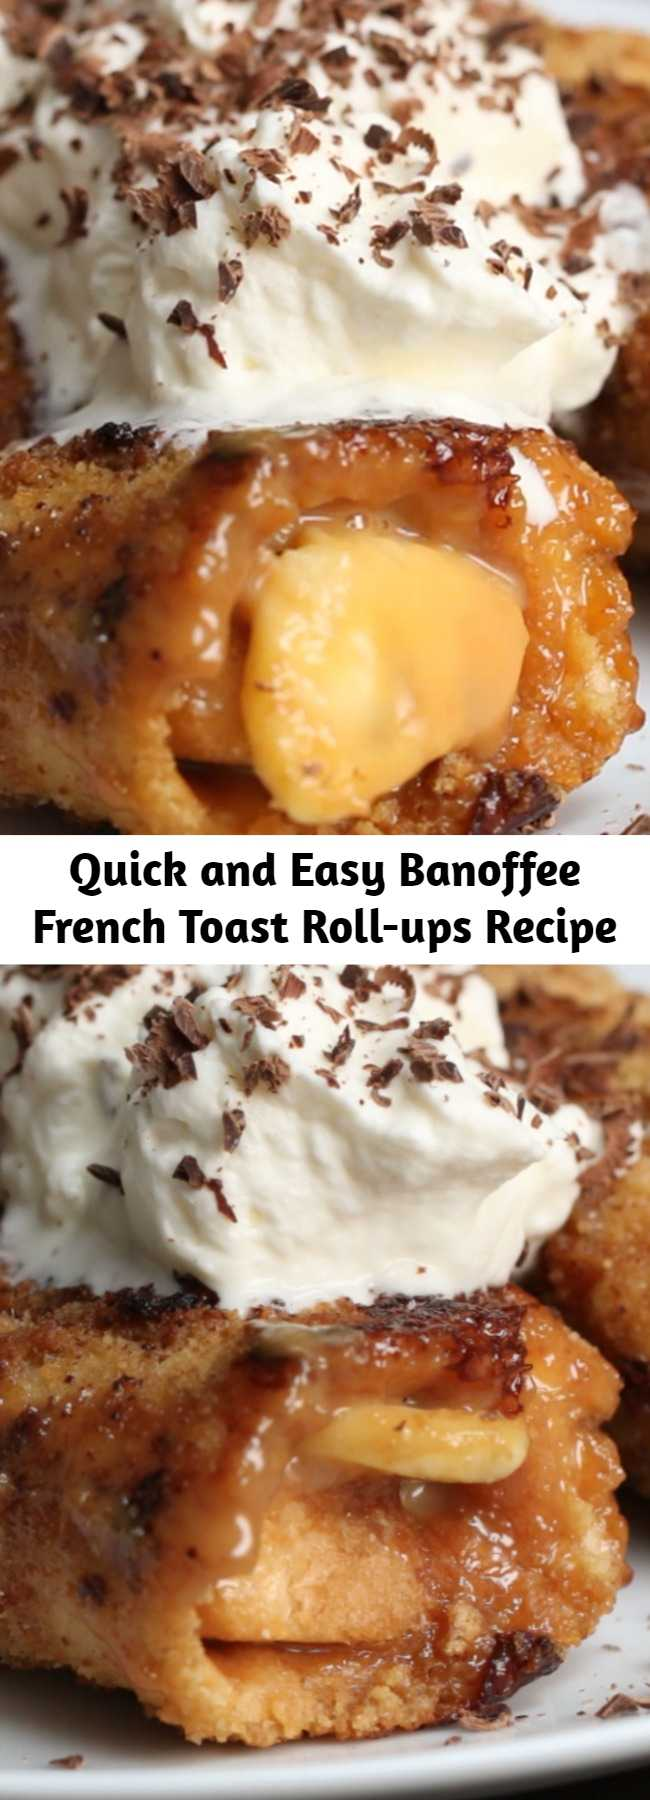 Quick and Easy Banoffee French Toast Roll-ups Recipe